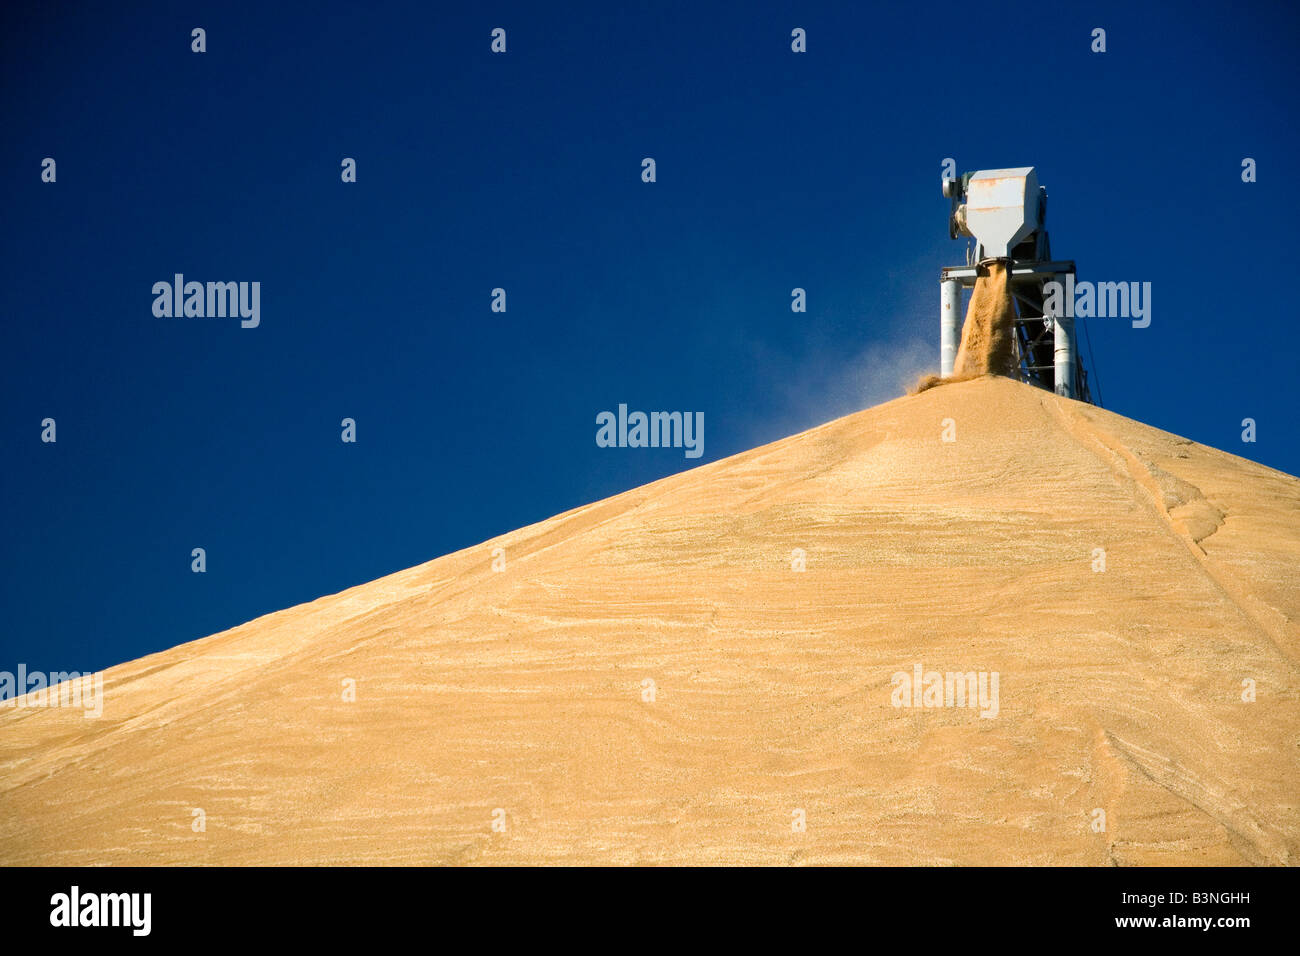 Large pile of harvested wheat at Pasco Washington - Stock Image